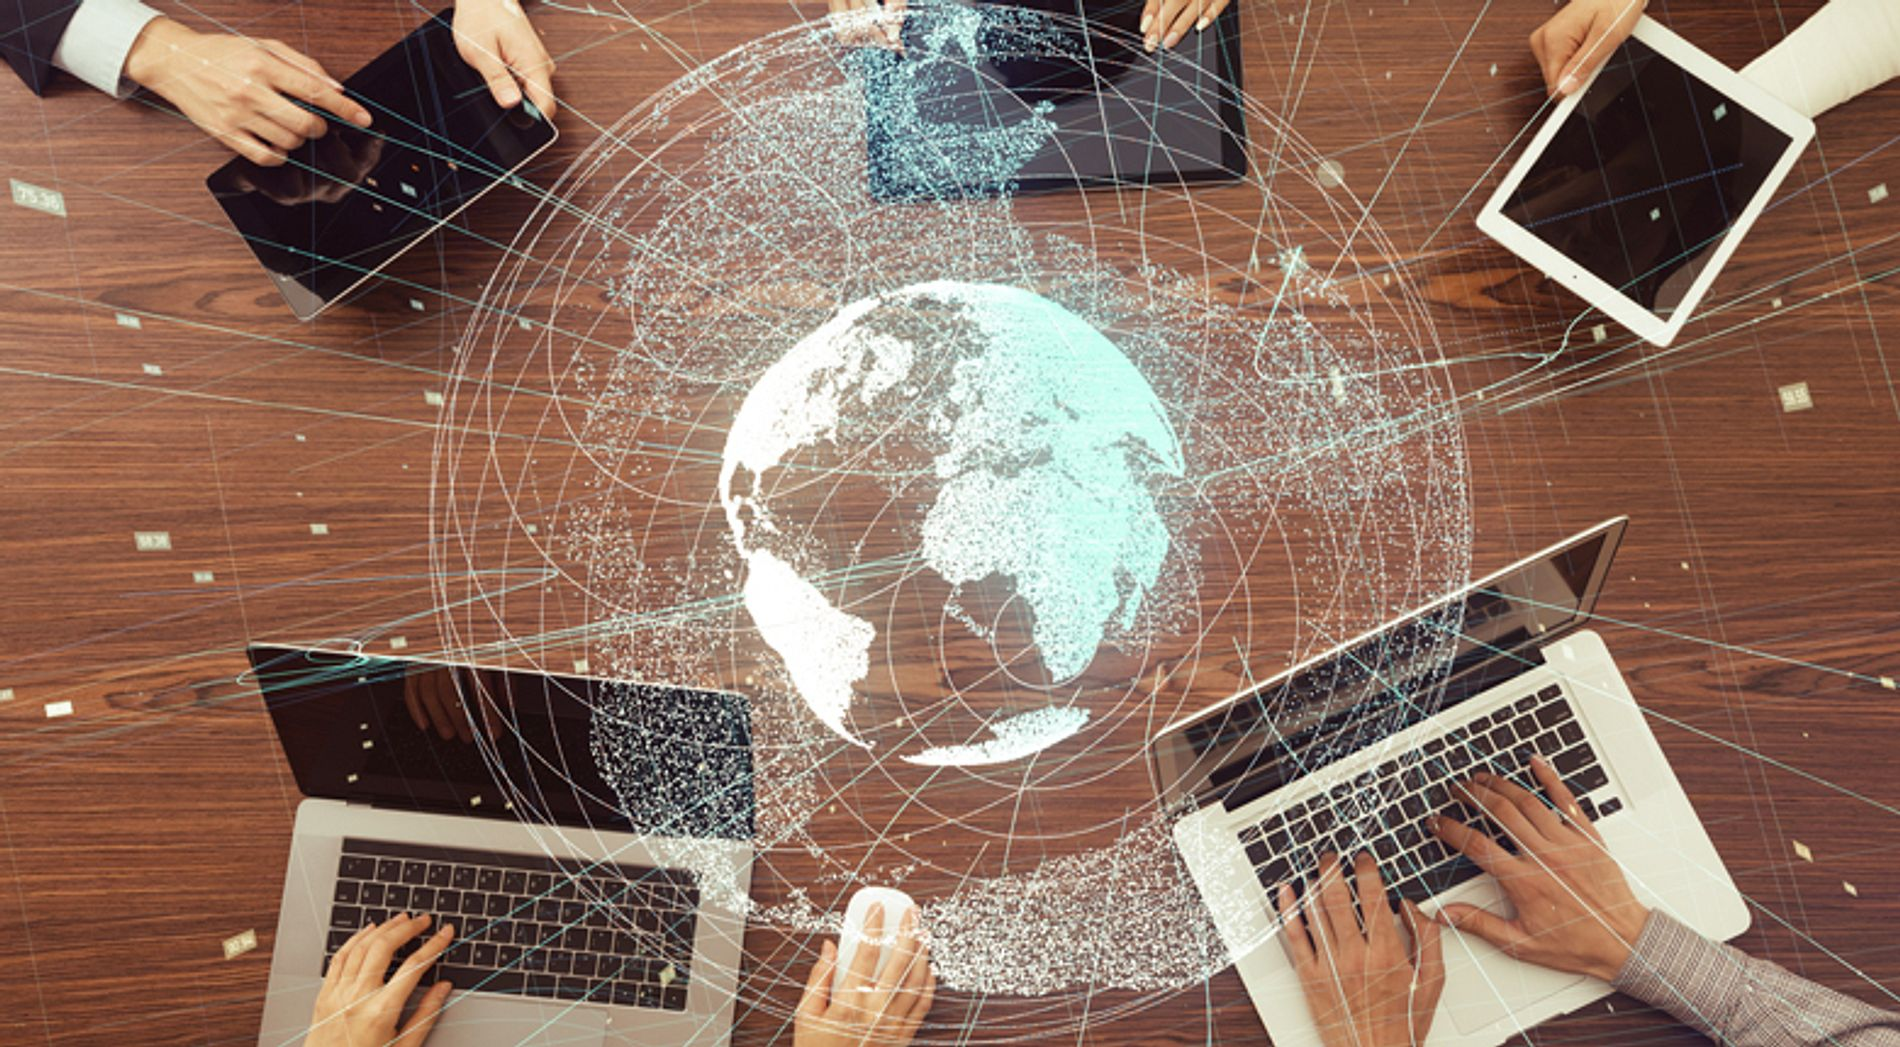 computers in a circle and a holographic globe